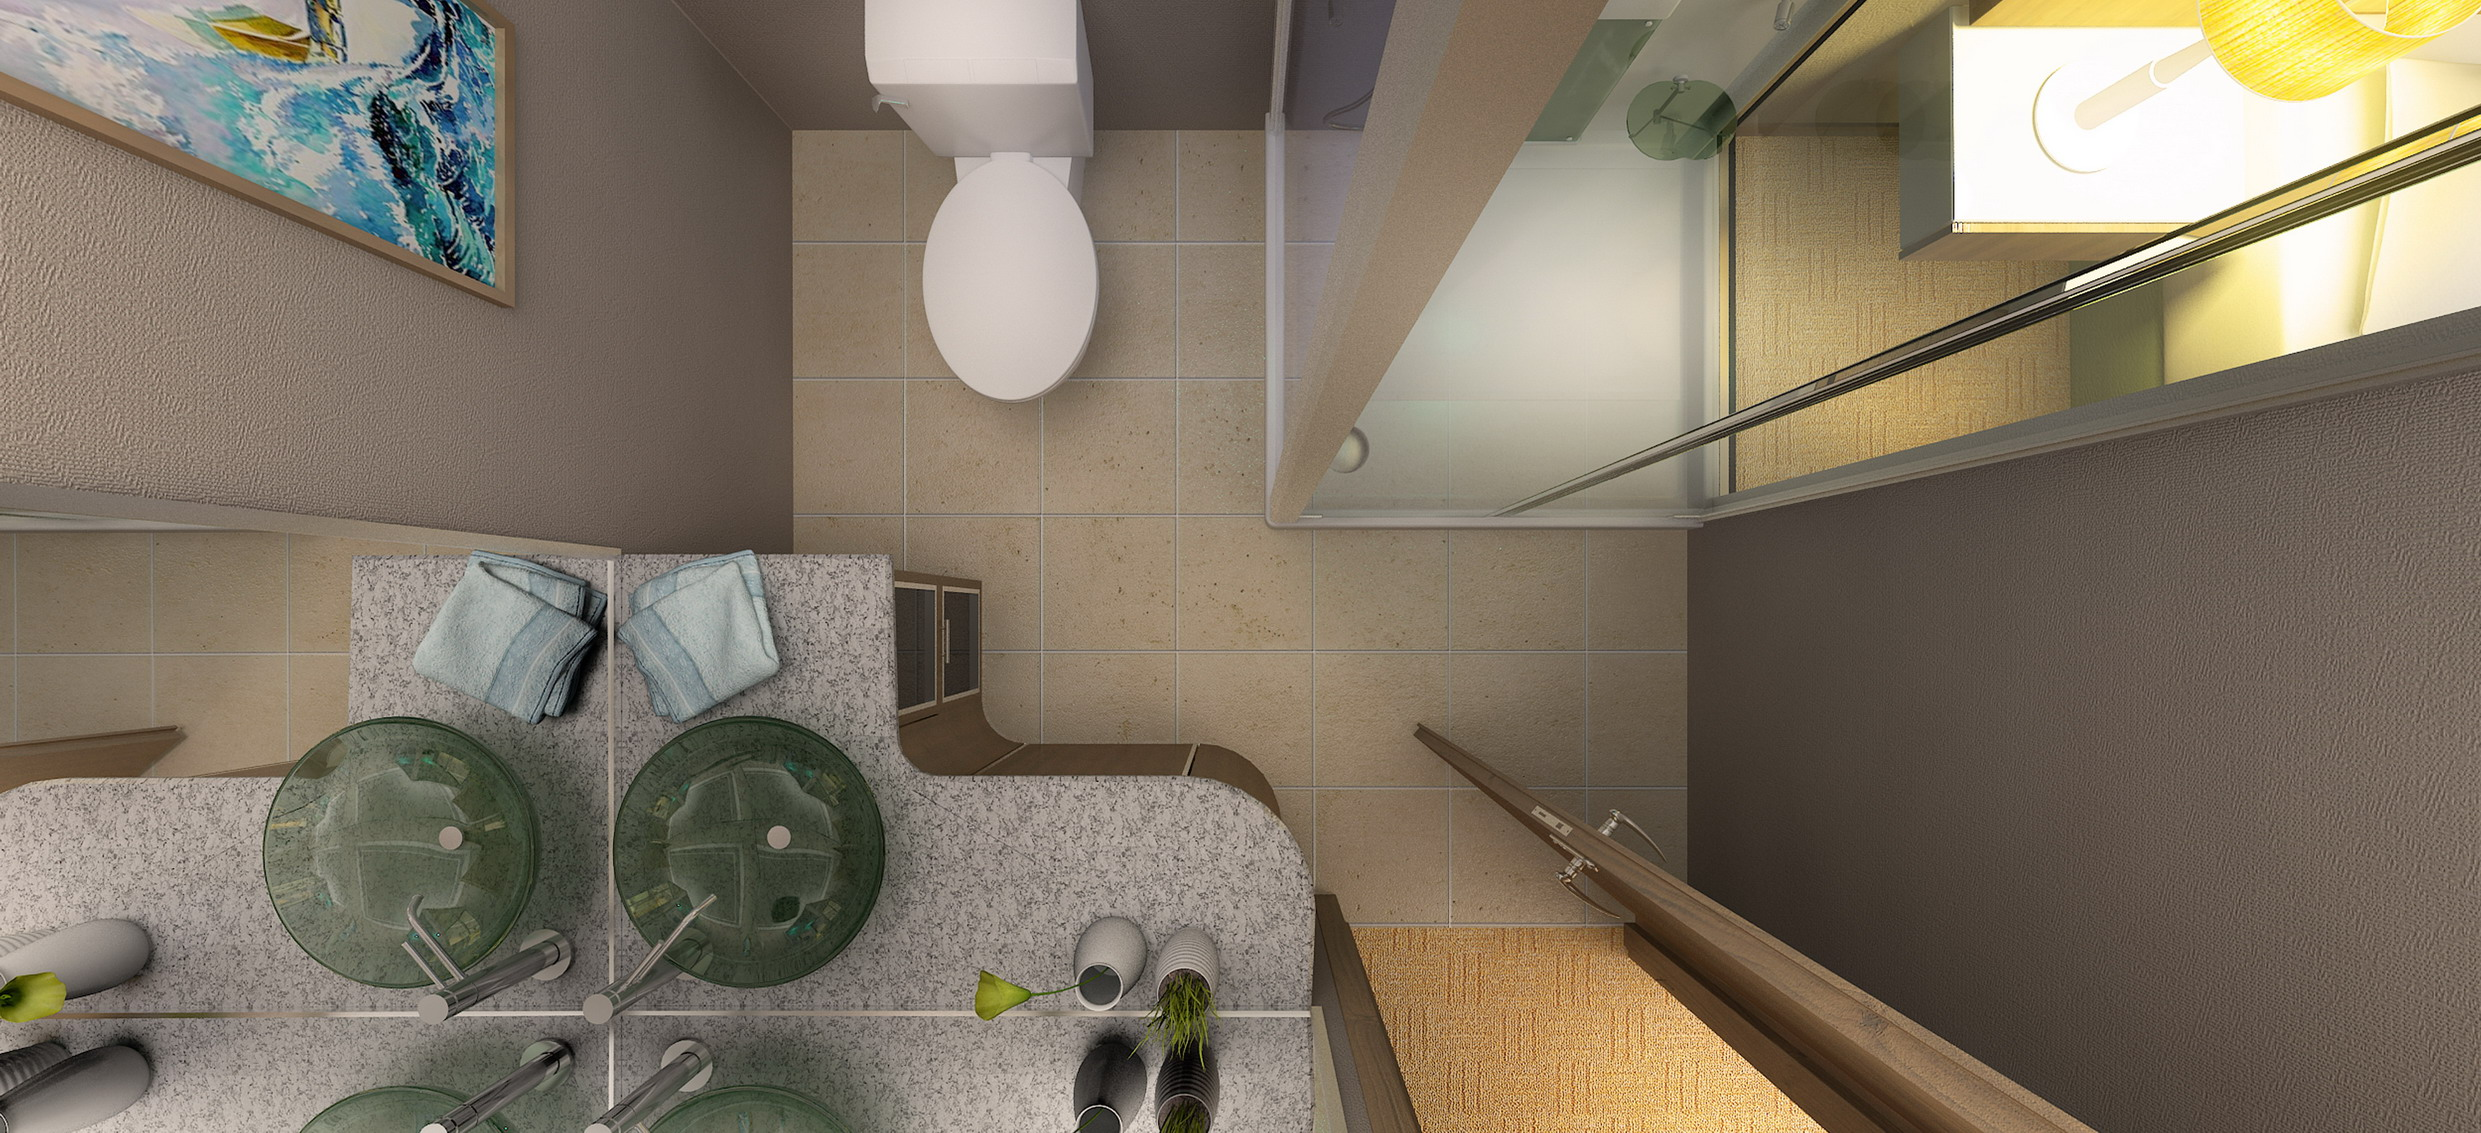 3D hotel room bathroom rendering from top